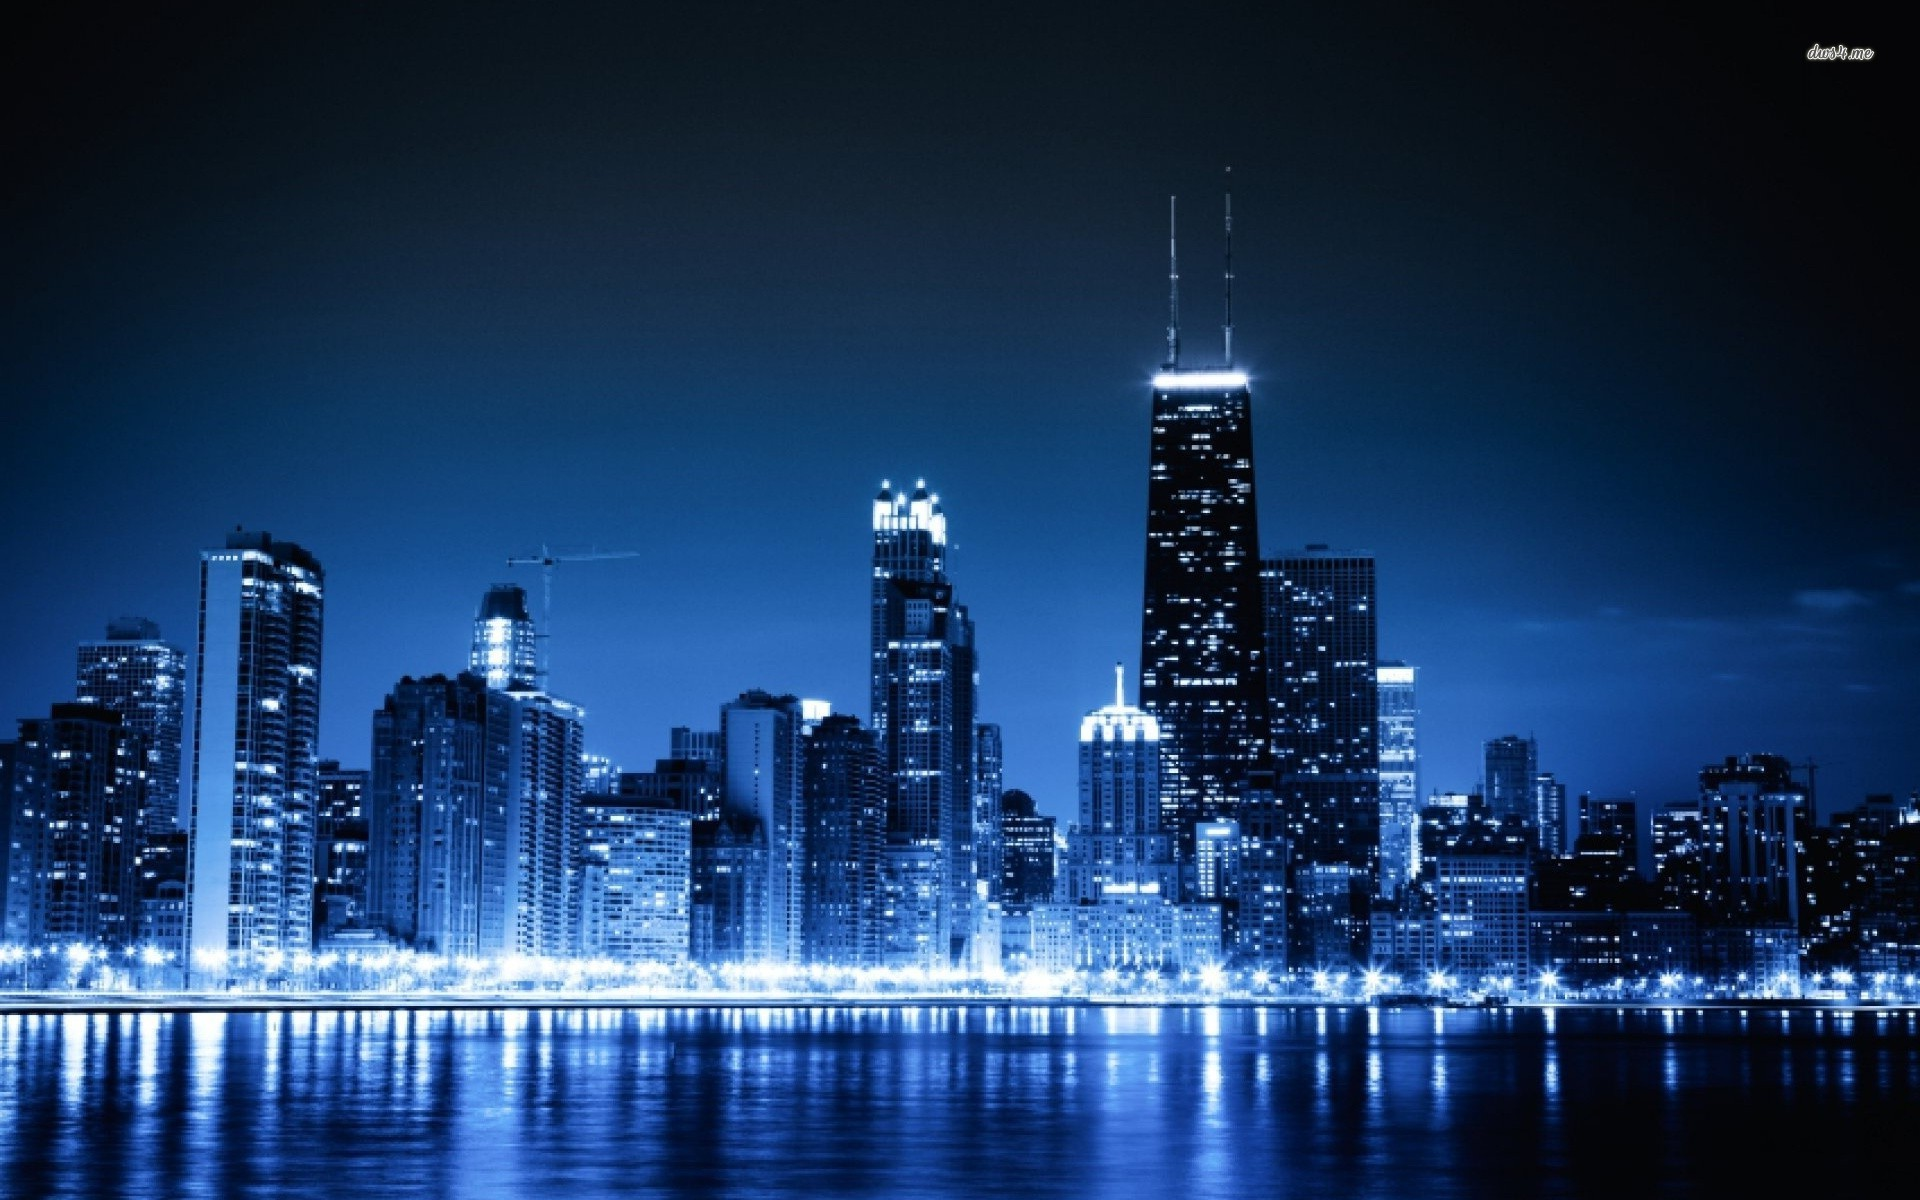 Free Download Related Wallpapers From Chicago At Night Wallpaper